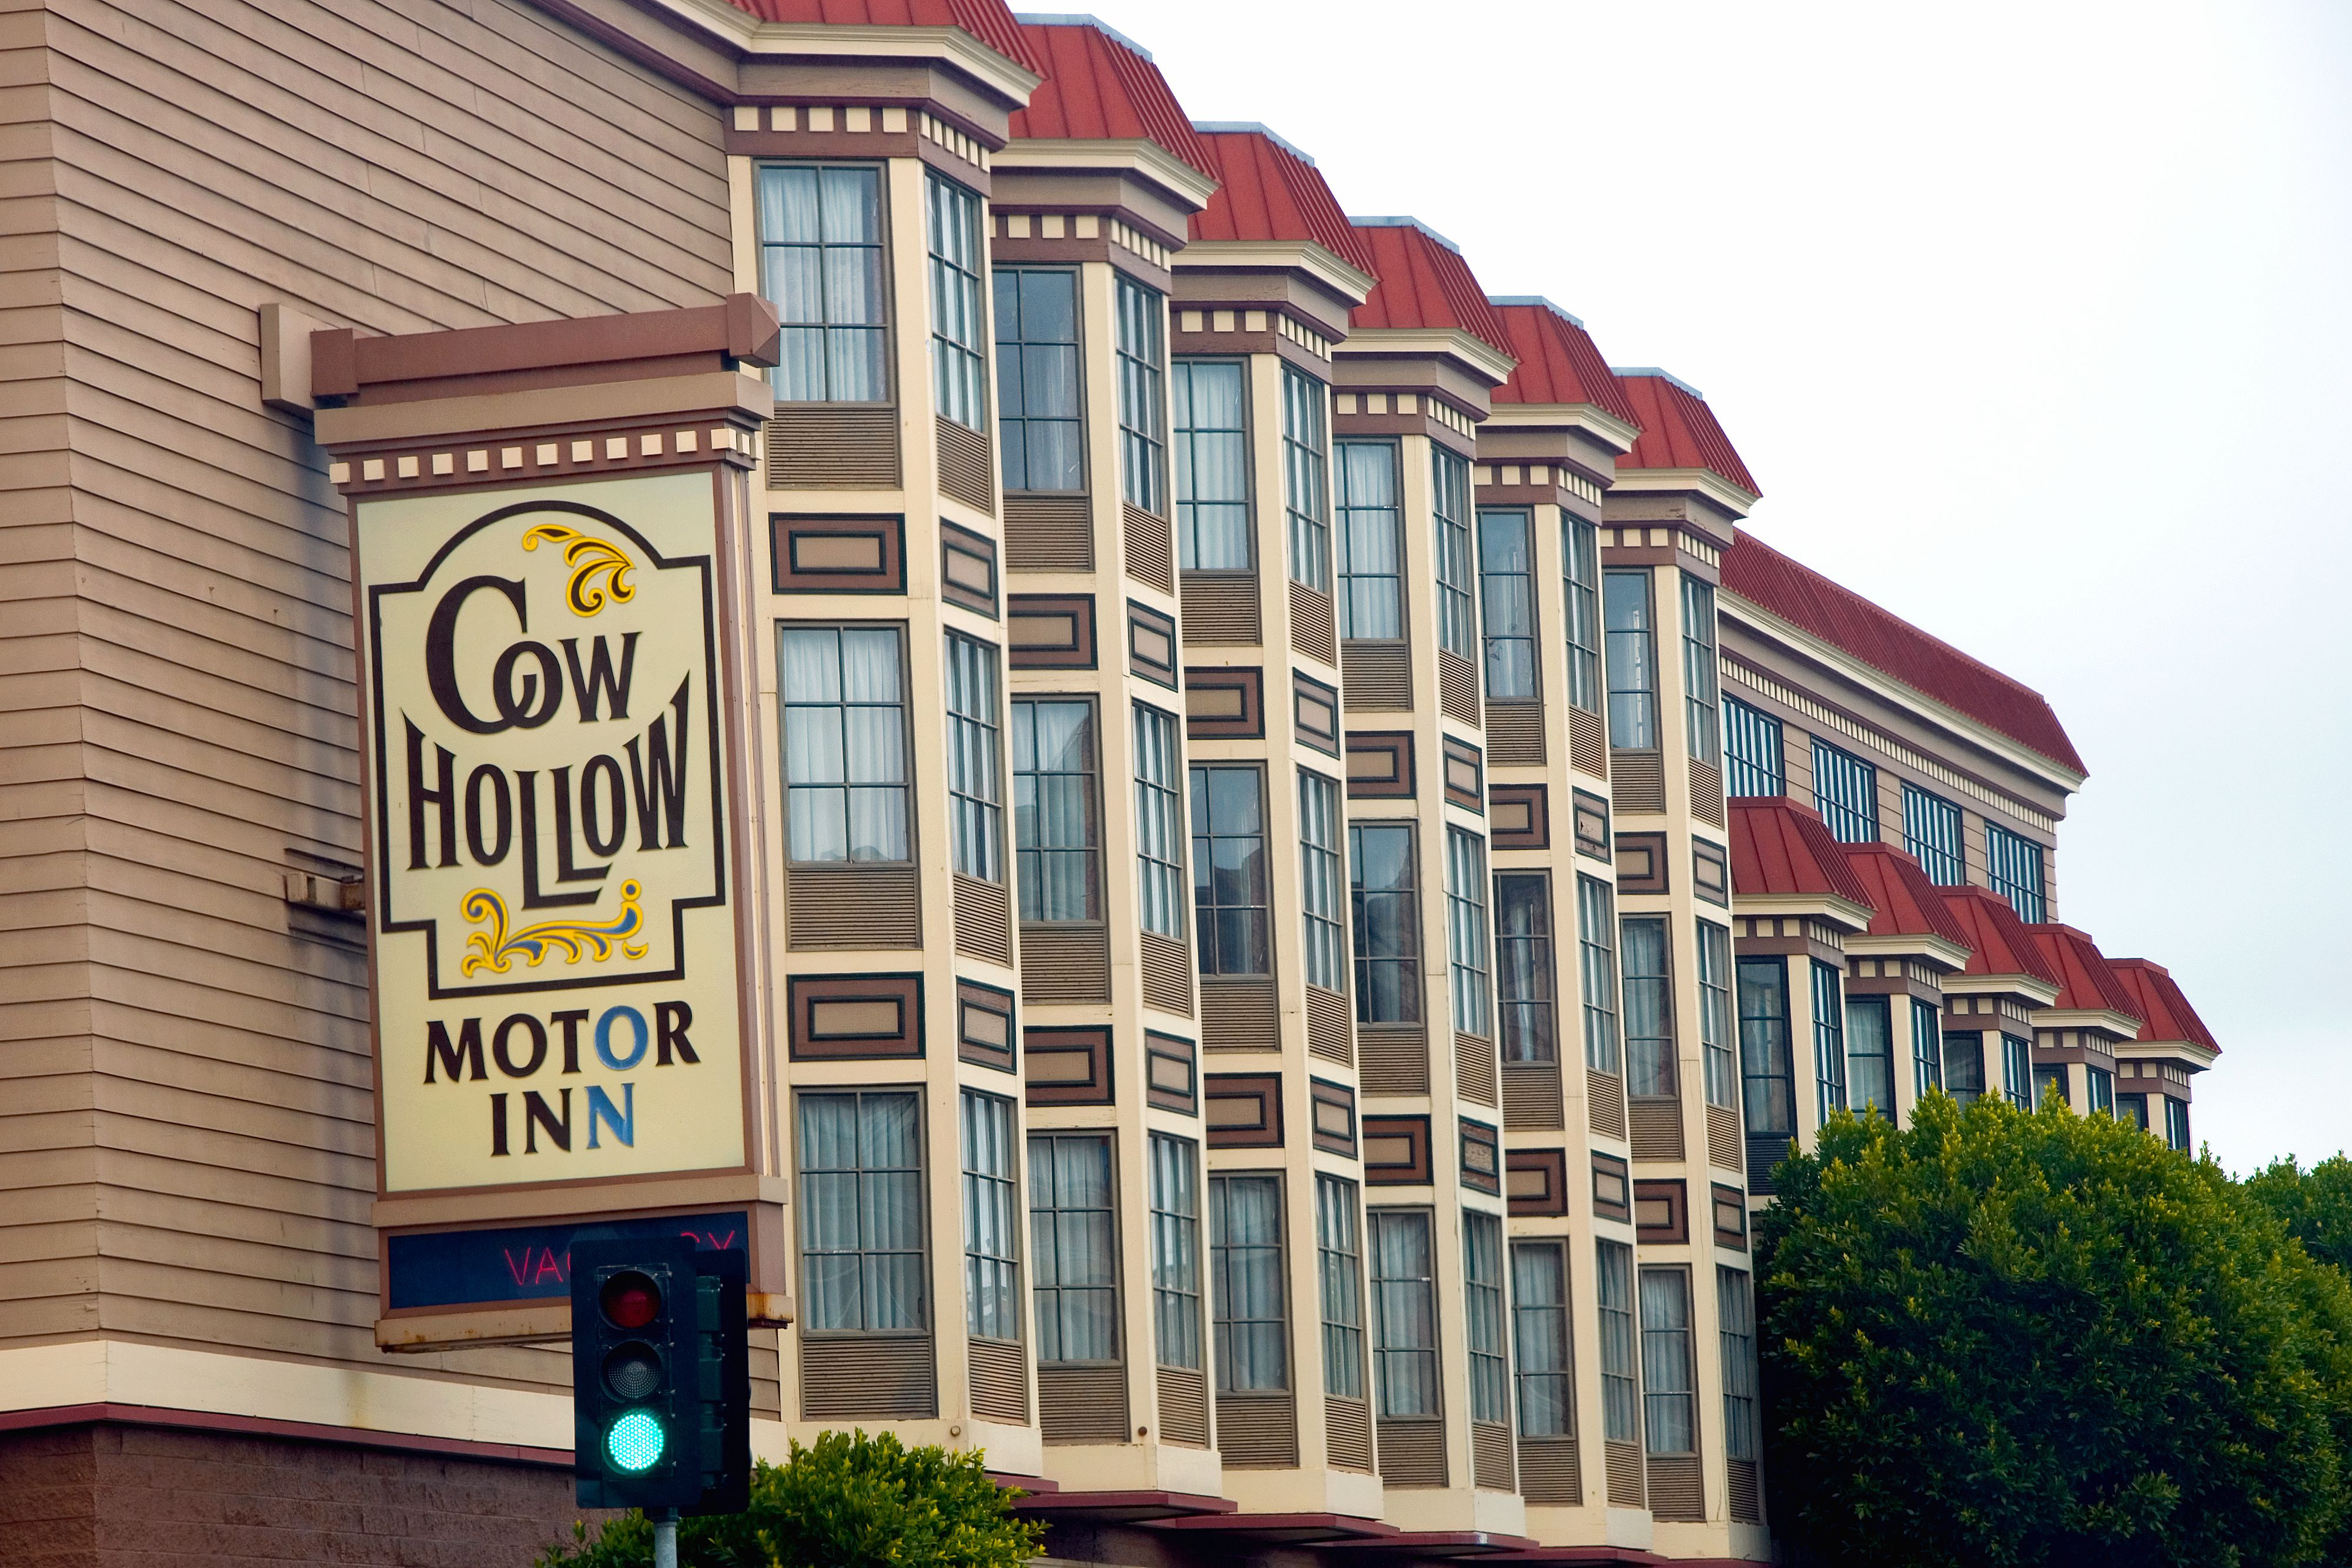 10 cheap san francisco hotels for your visit for Cow hollow motor inn